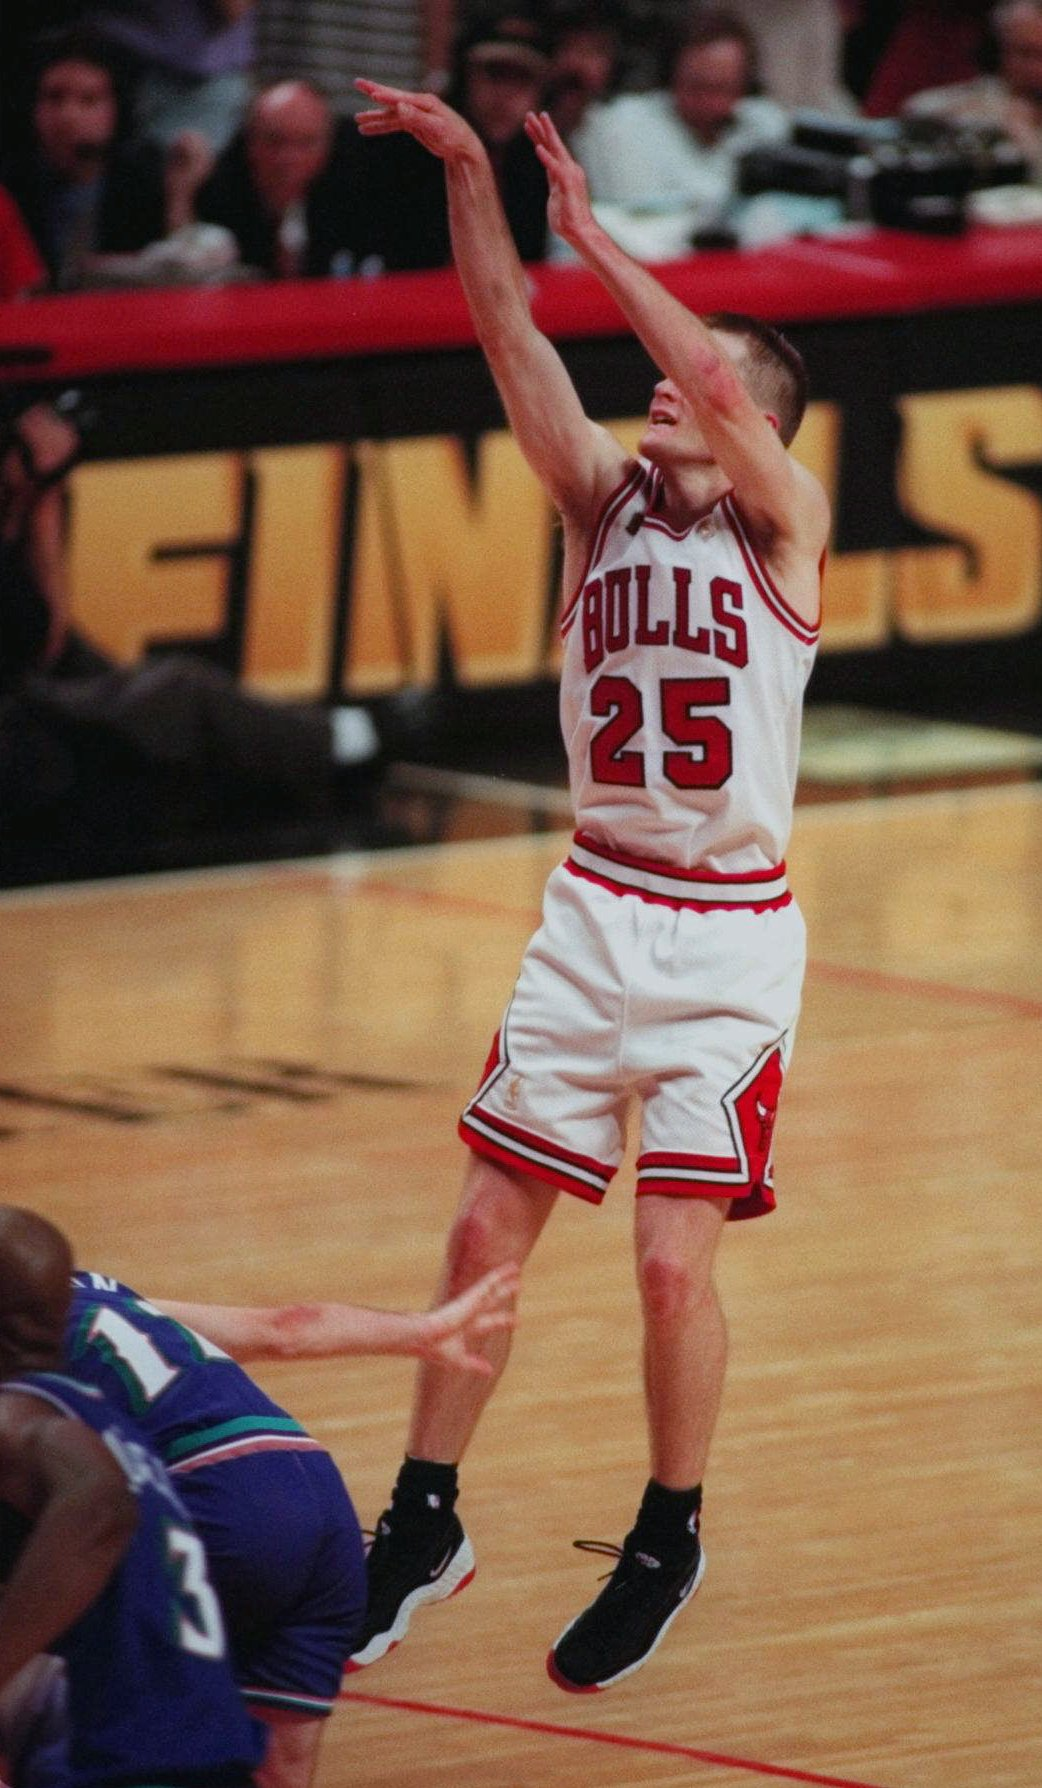 3317c4e2e Chicago Bulls guard Steve Kerr launches the winning shot in the final  seconds of Chicago s 90-86 victory over the Utah Jazz in Game 6 for the  1997 NBA ...